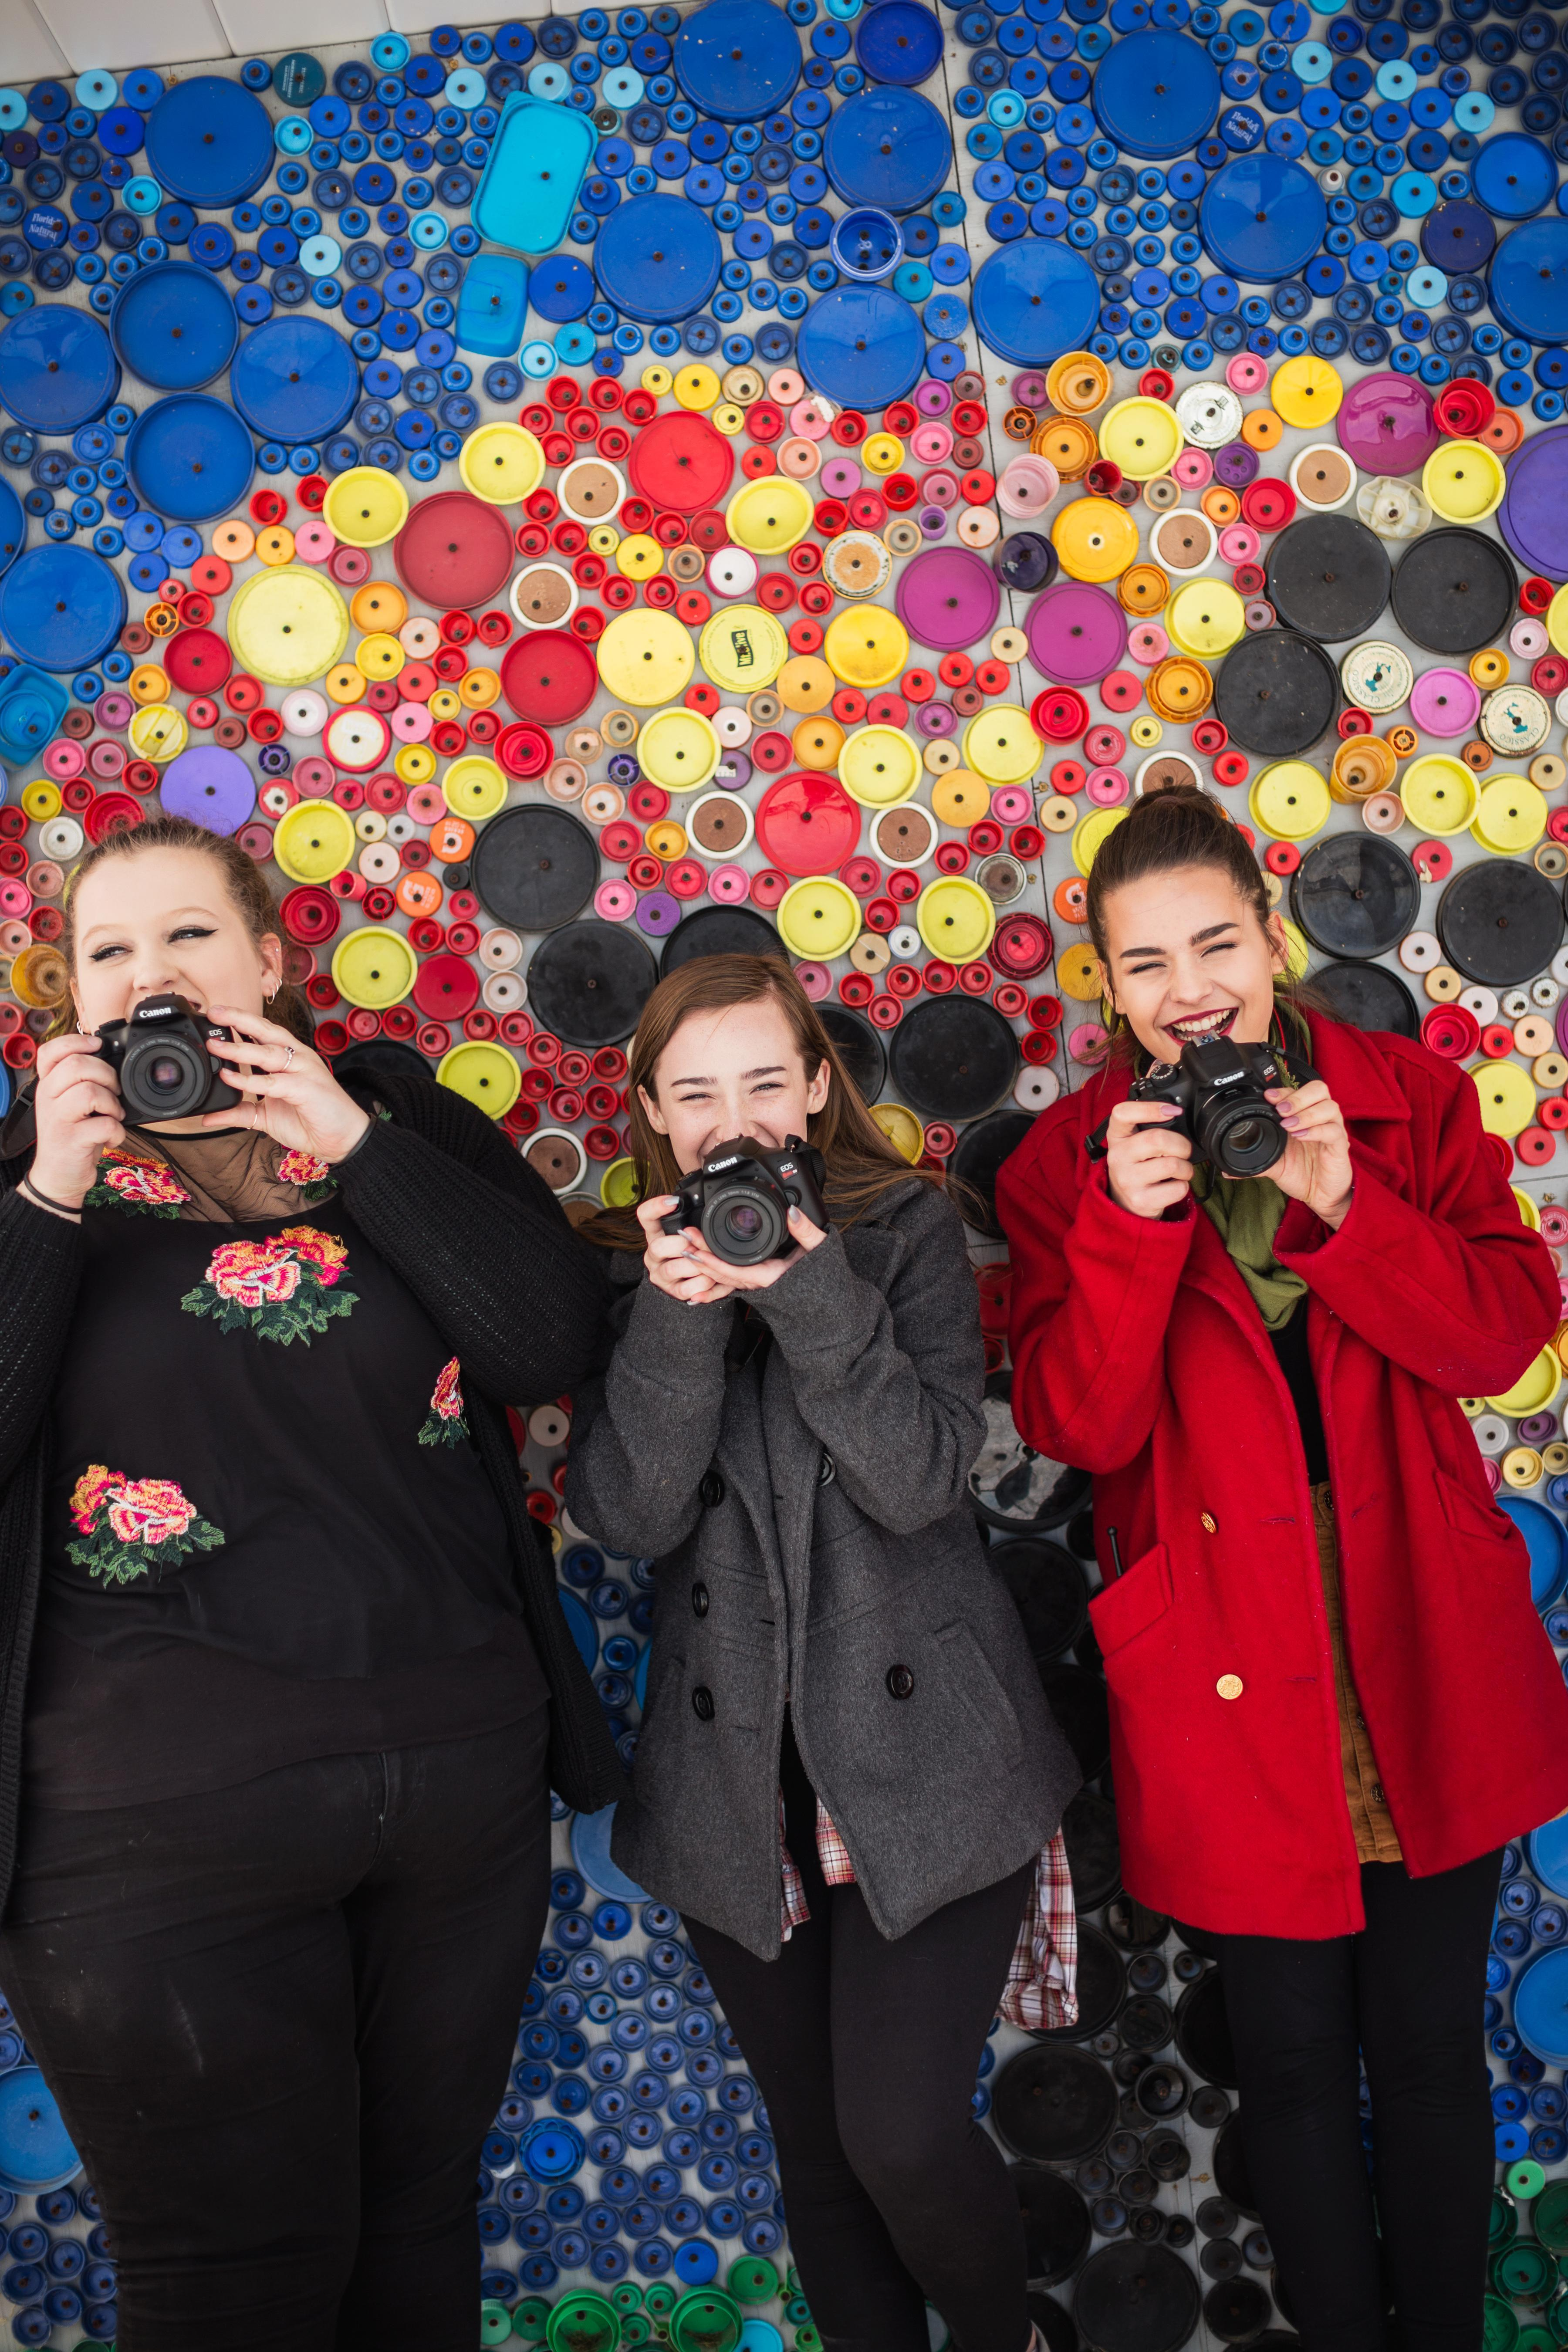 Students with cameras